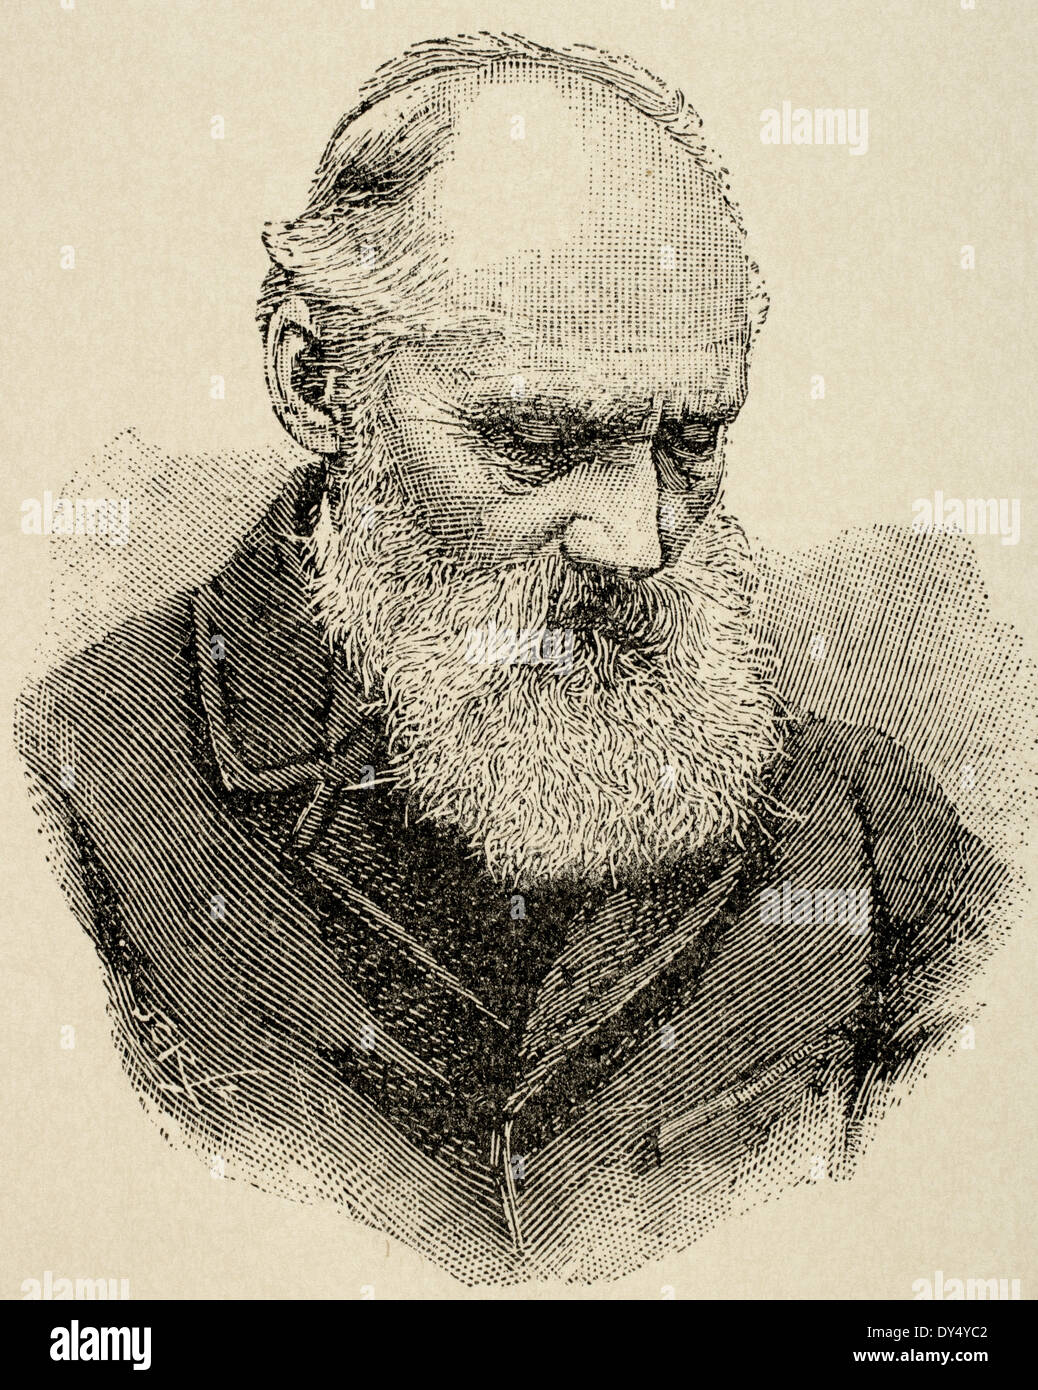 William Thomson, 1st Baron Kelvin (1824 -1907). British physicist and mathematician. Engraving. The Artistic illustration, 1896. - Stock Image